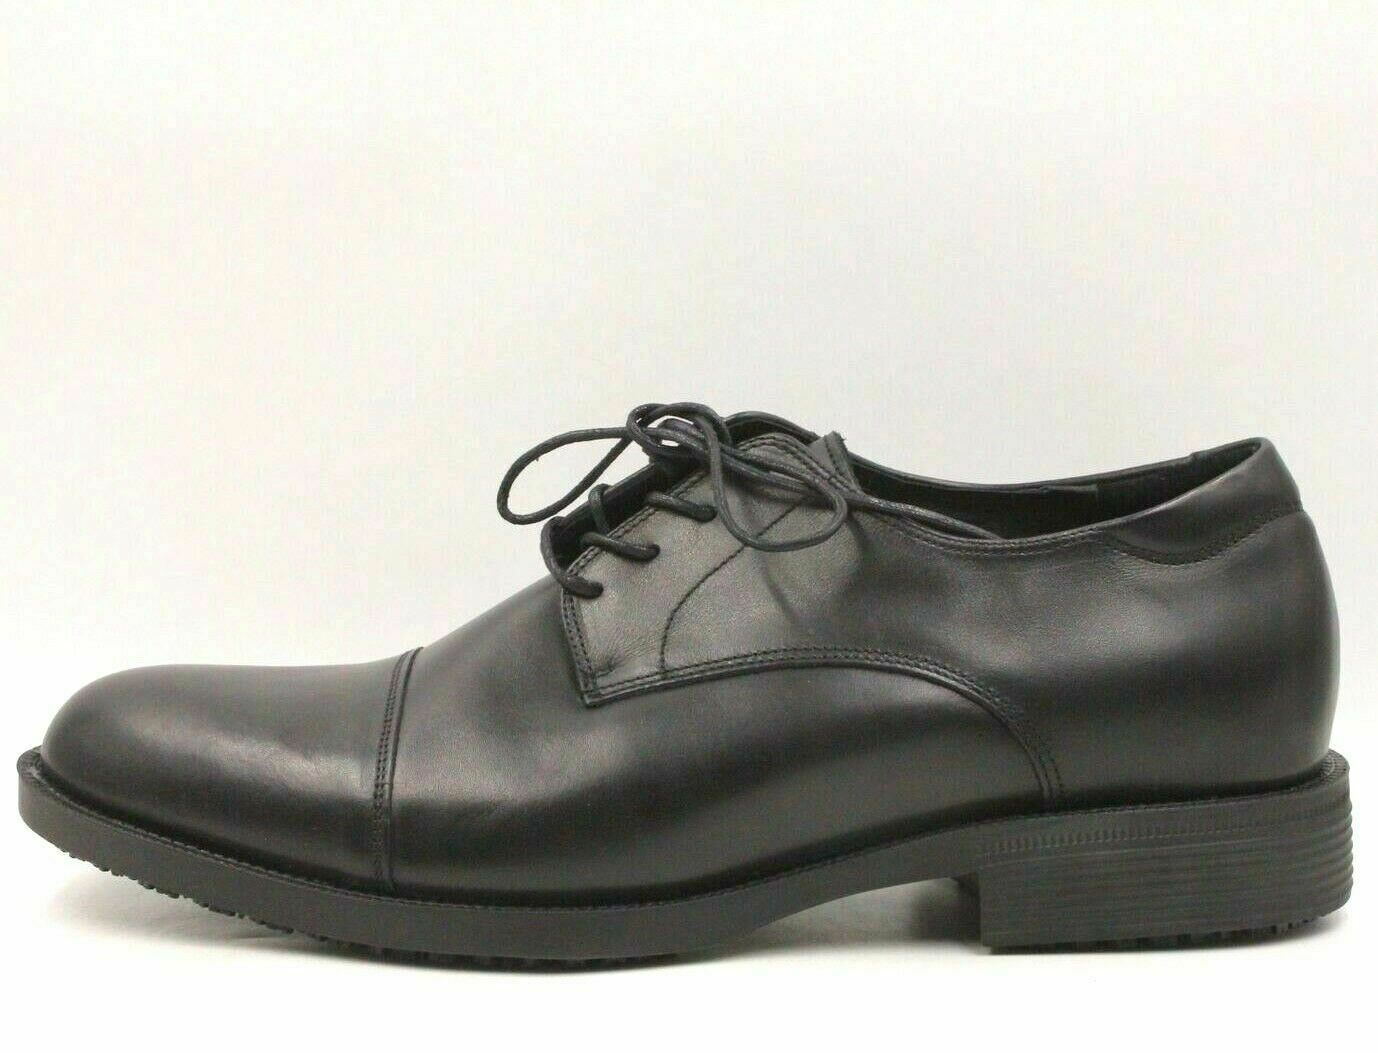 09a9c18efd7 SHOES FOR CREWS Senator Men Slip Oil Resistant Oxfords Size US 12 Black  Leather